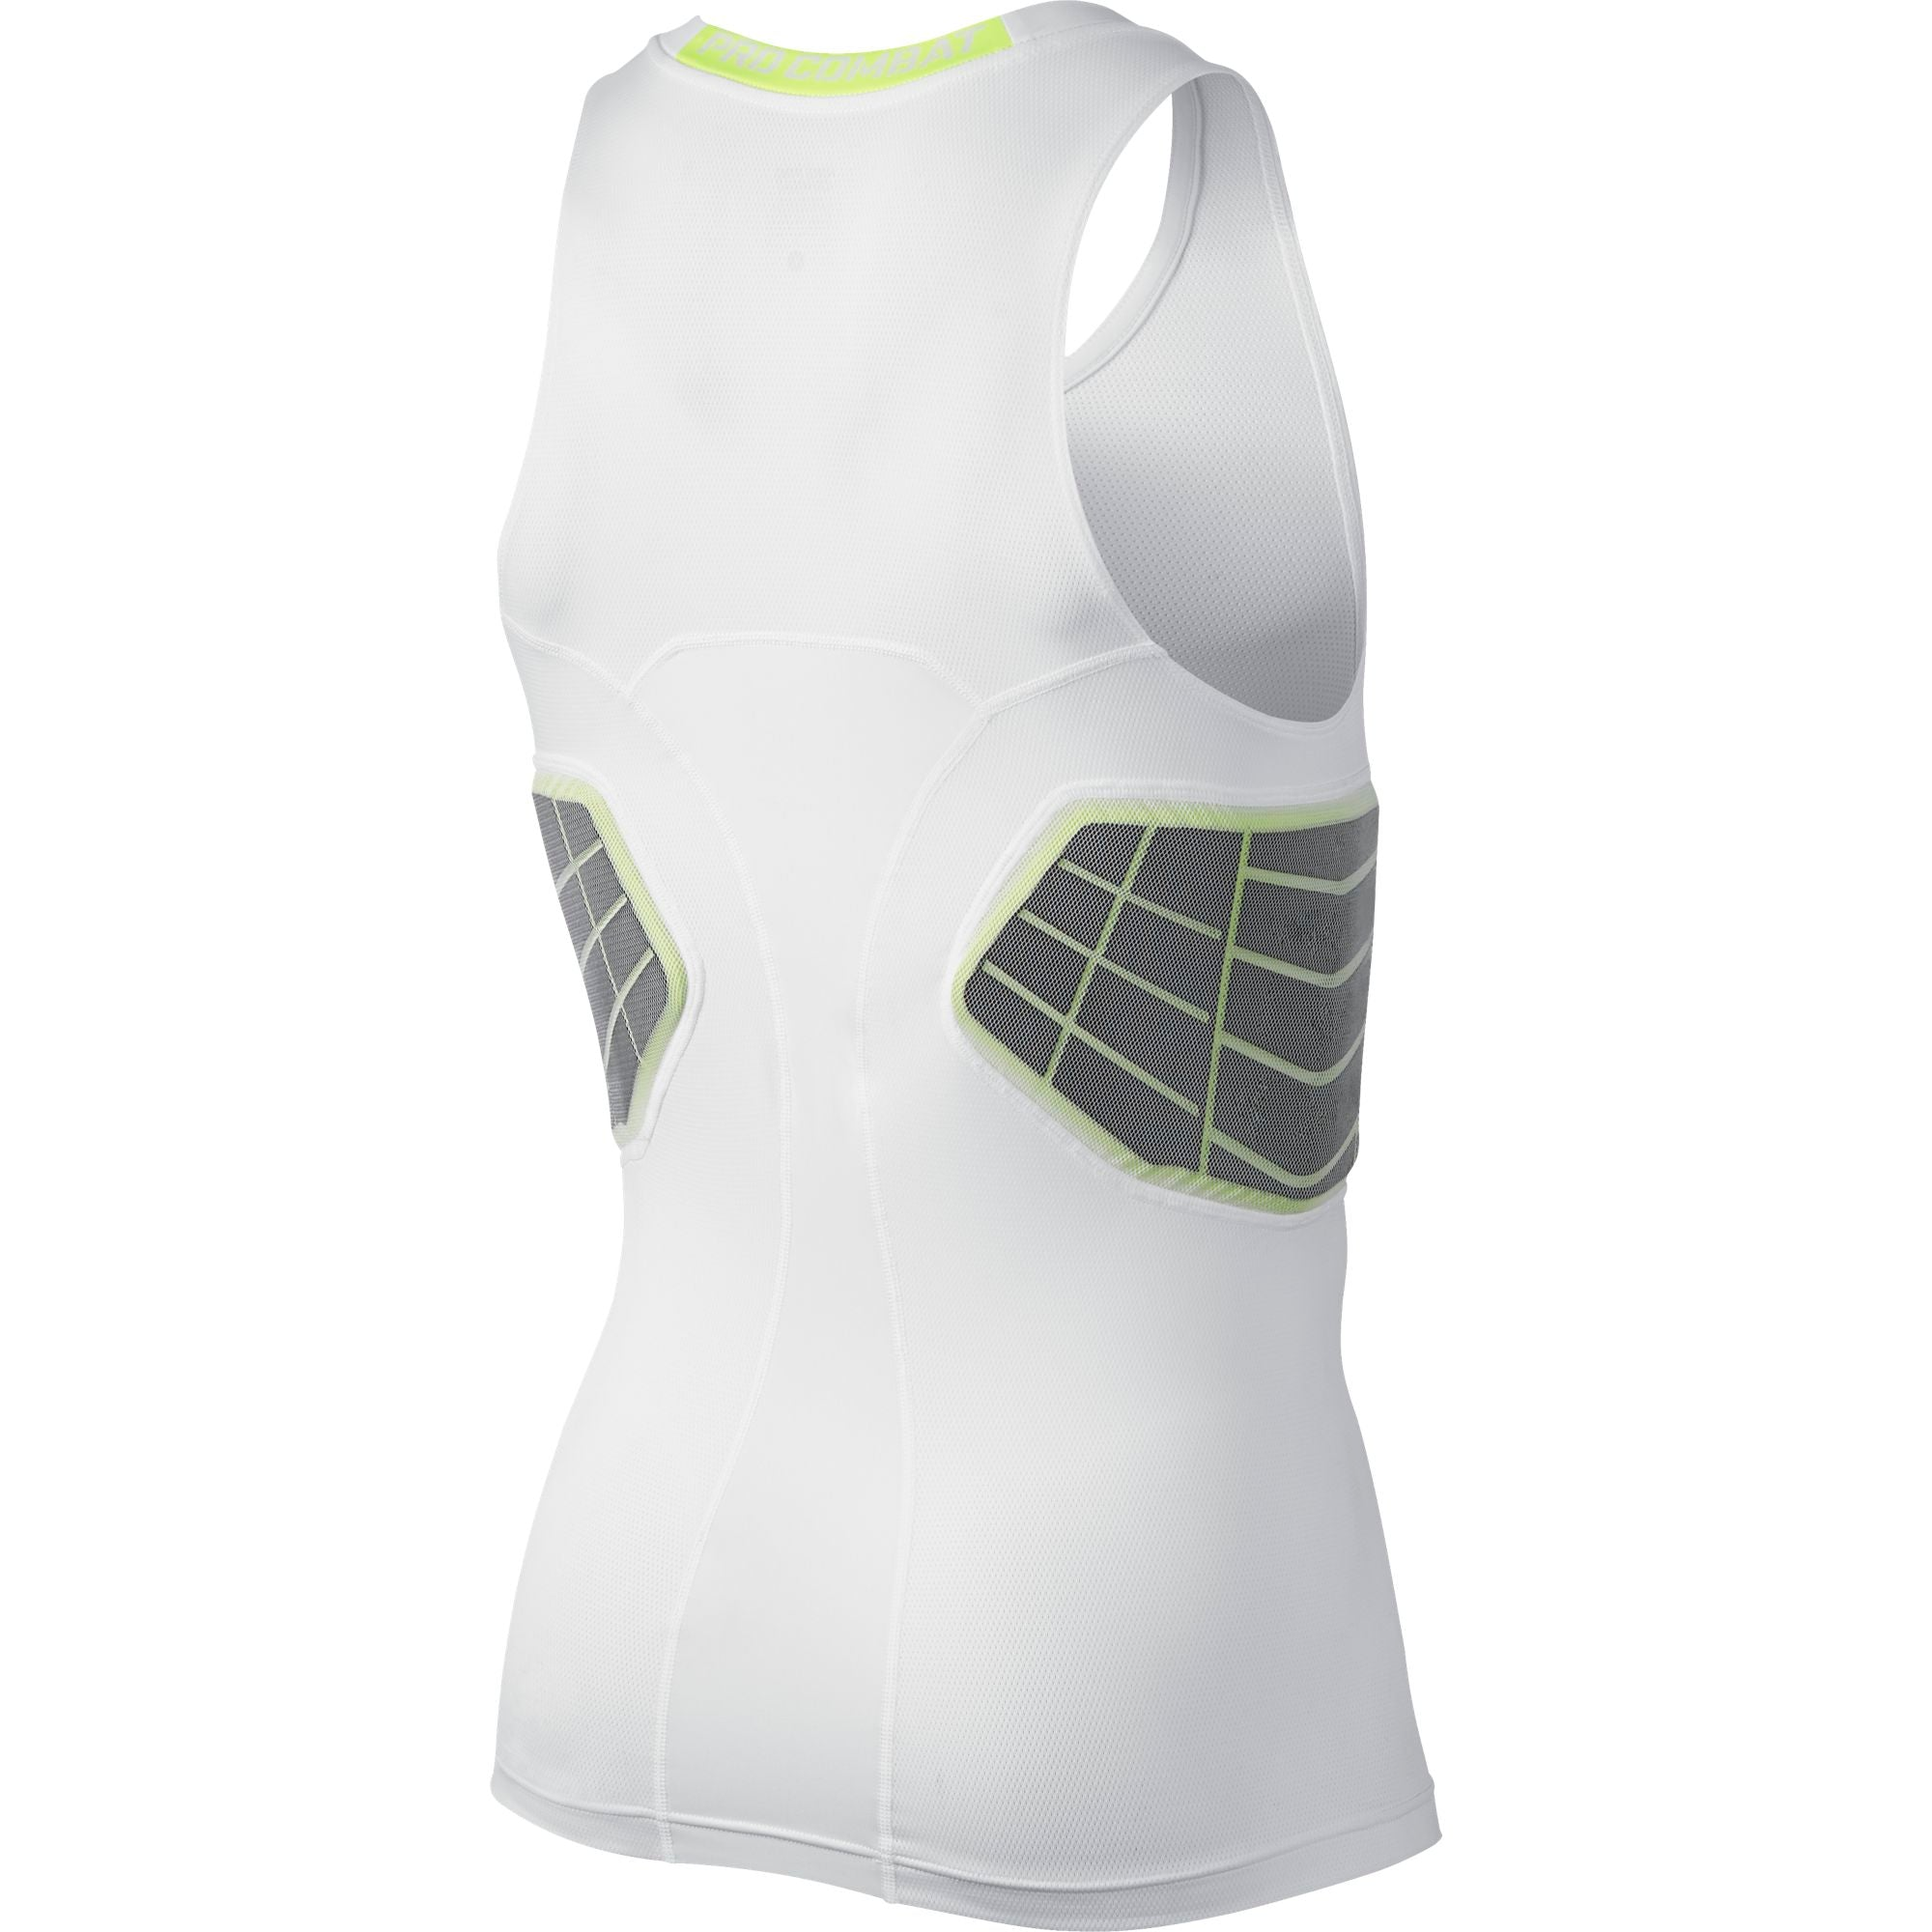 Nike Basketball Pro Combat Hyperstrong Elite Sleeveless Basketball Compression Top - White/Volt